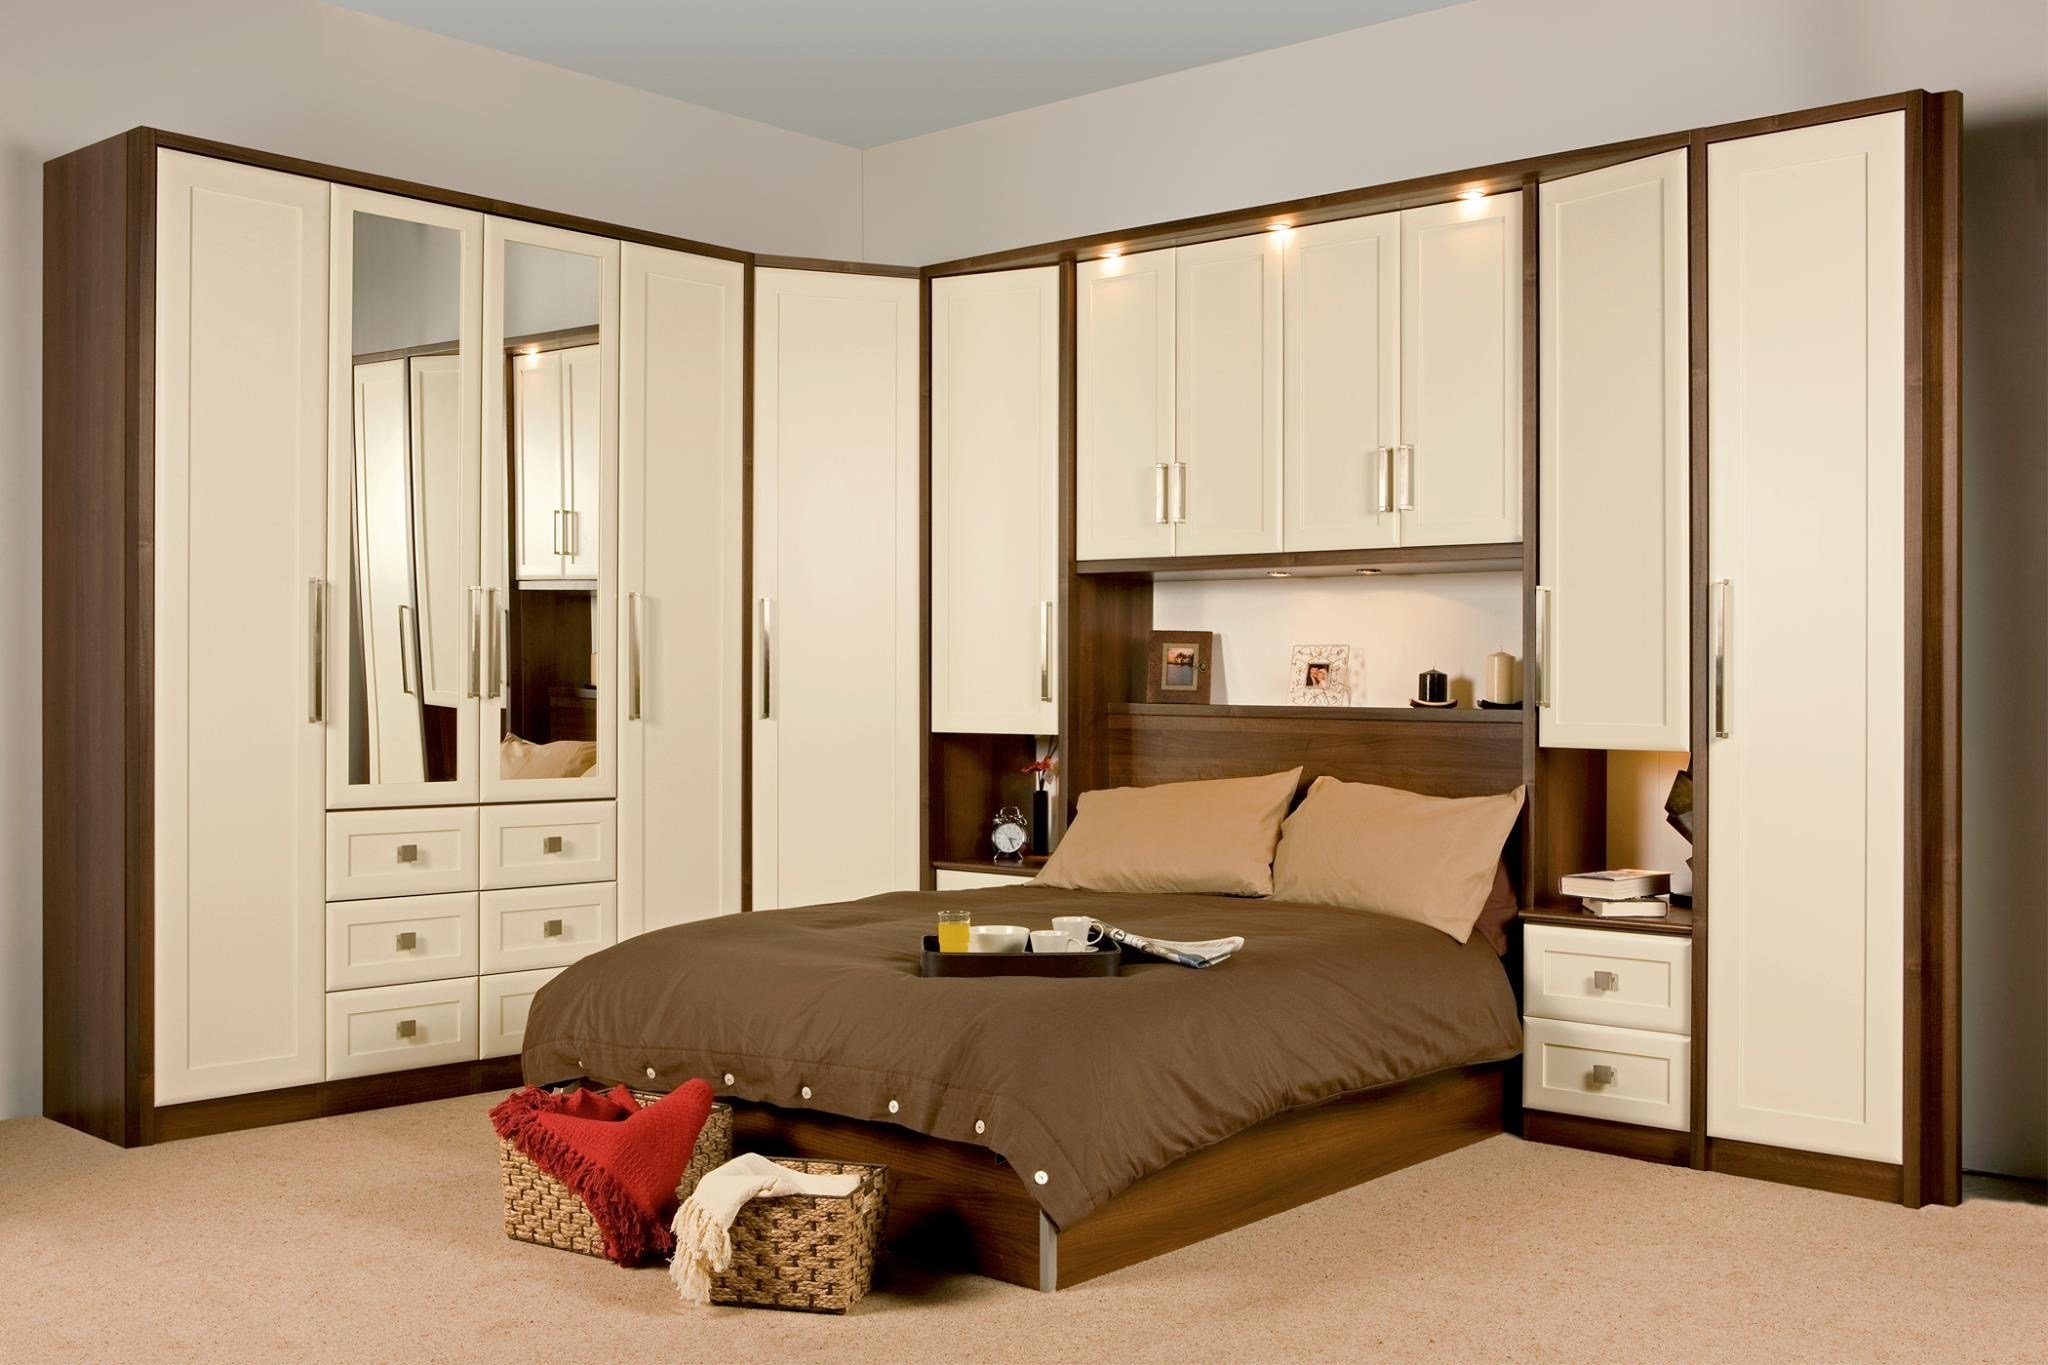 Best Sunny Bk Fitted Wardrobes Bespoke Wardrobes Furniture Specialists With Pictures